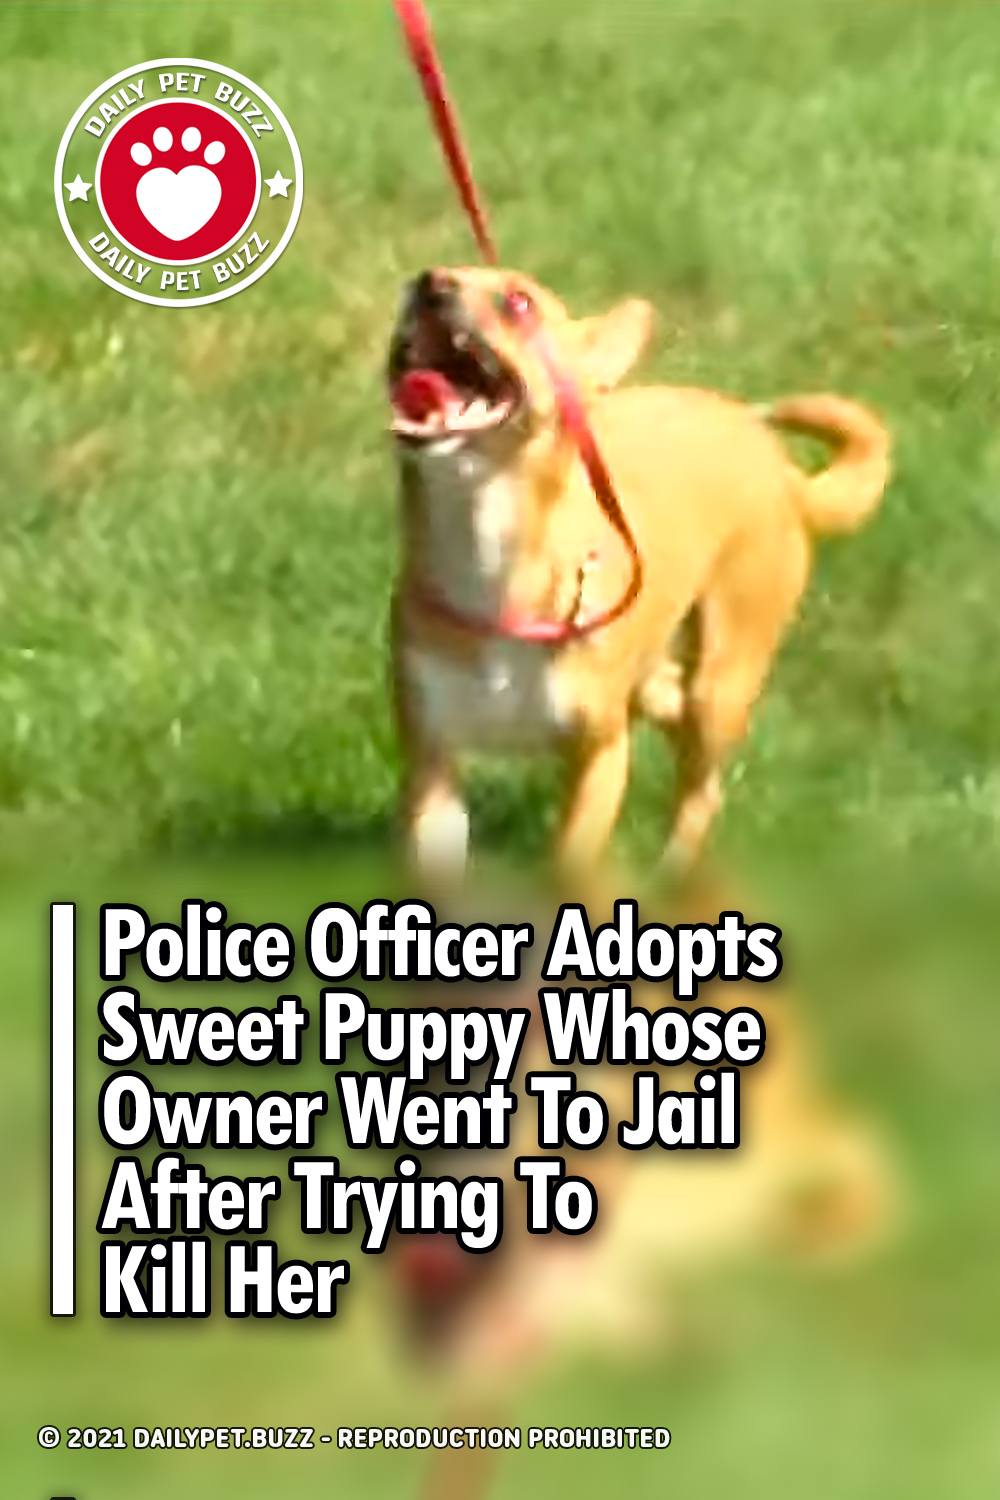 Police Officer Adopts Sweet Puppy Whose Owner Went To Jail After Trying To Kill Her